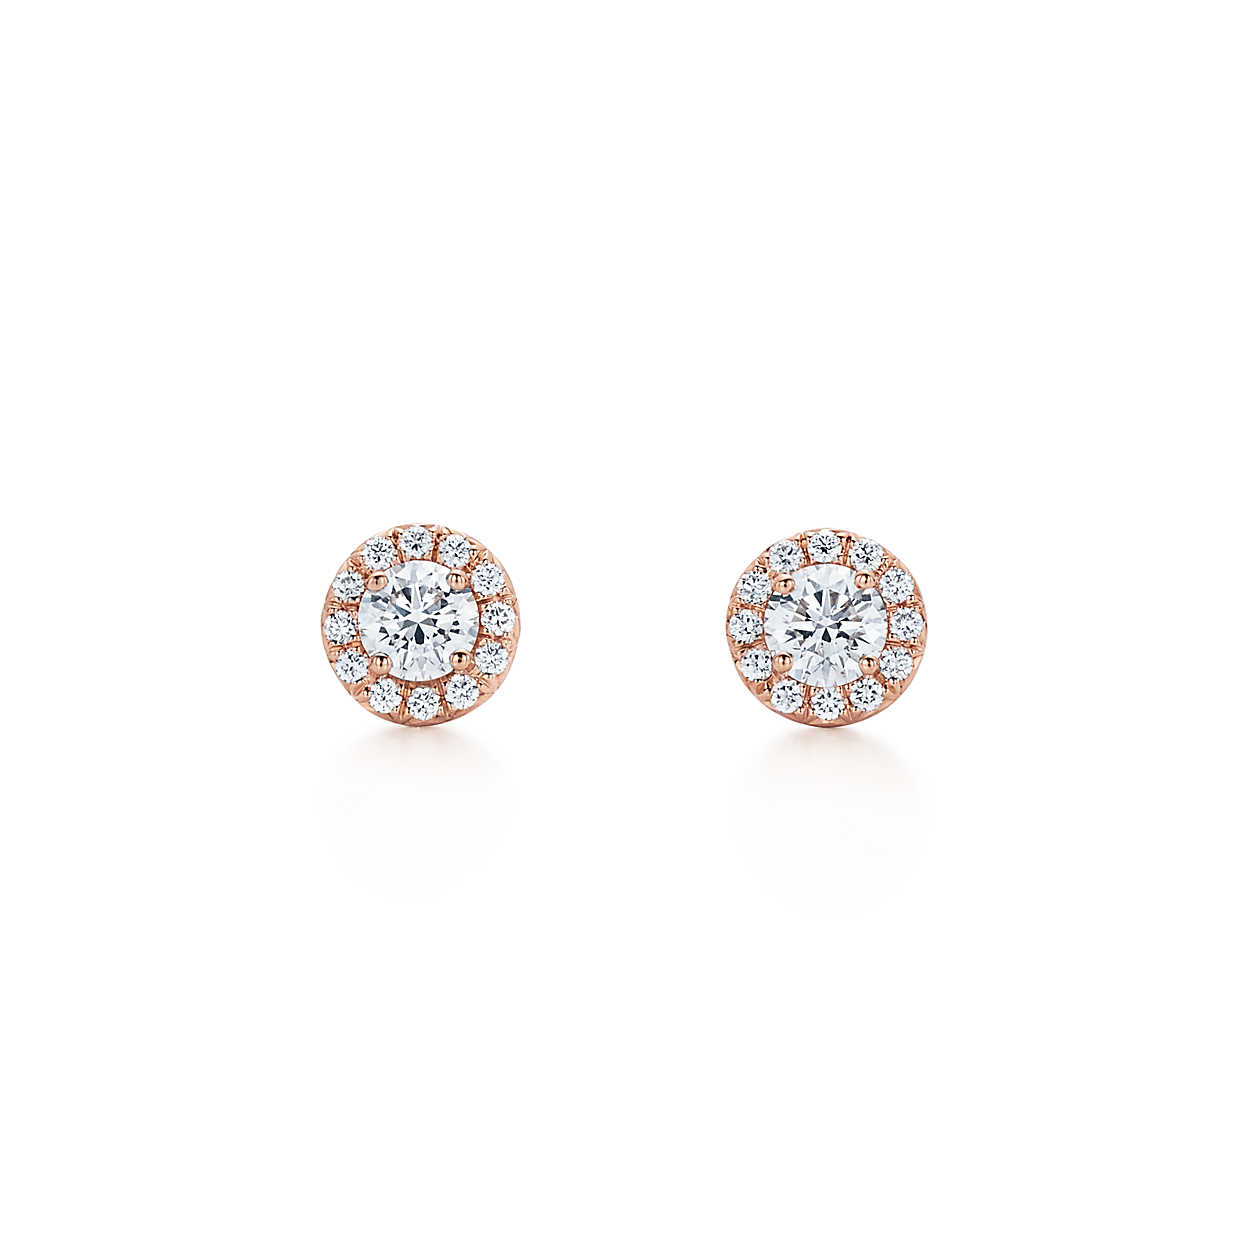 """Wedding Earrings for Every Bride, Tiffany and Co. """"Soleste"""" Round Diamond Earrings"""